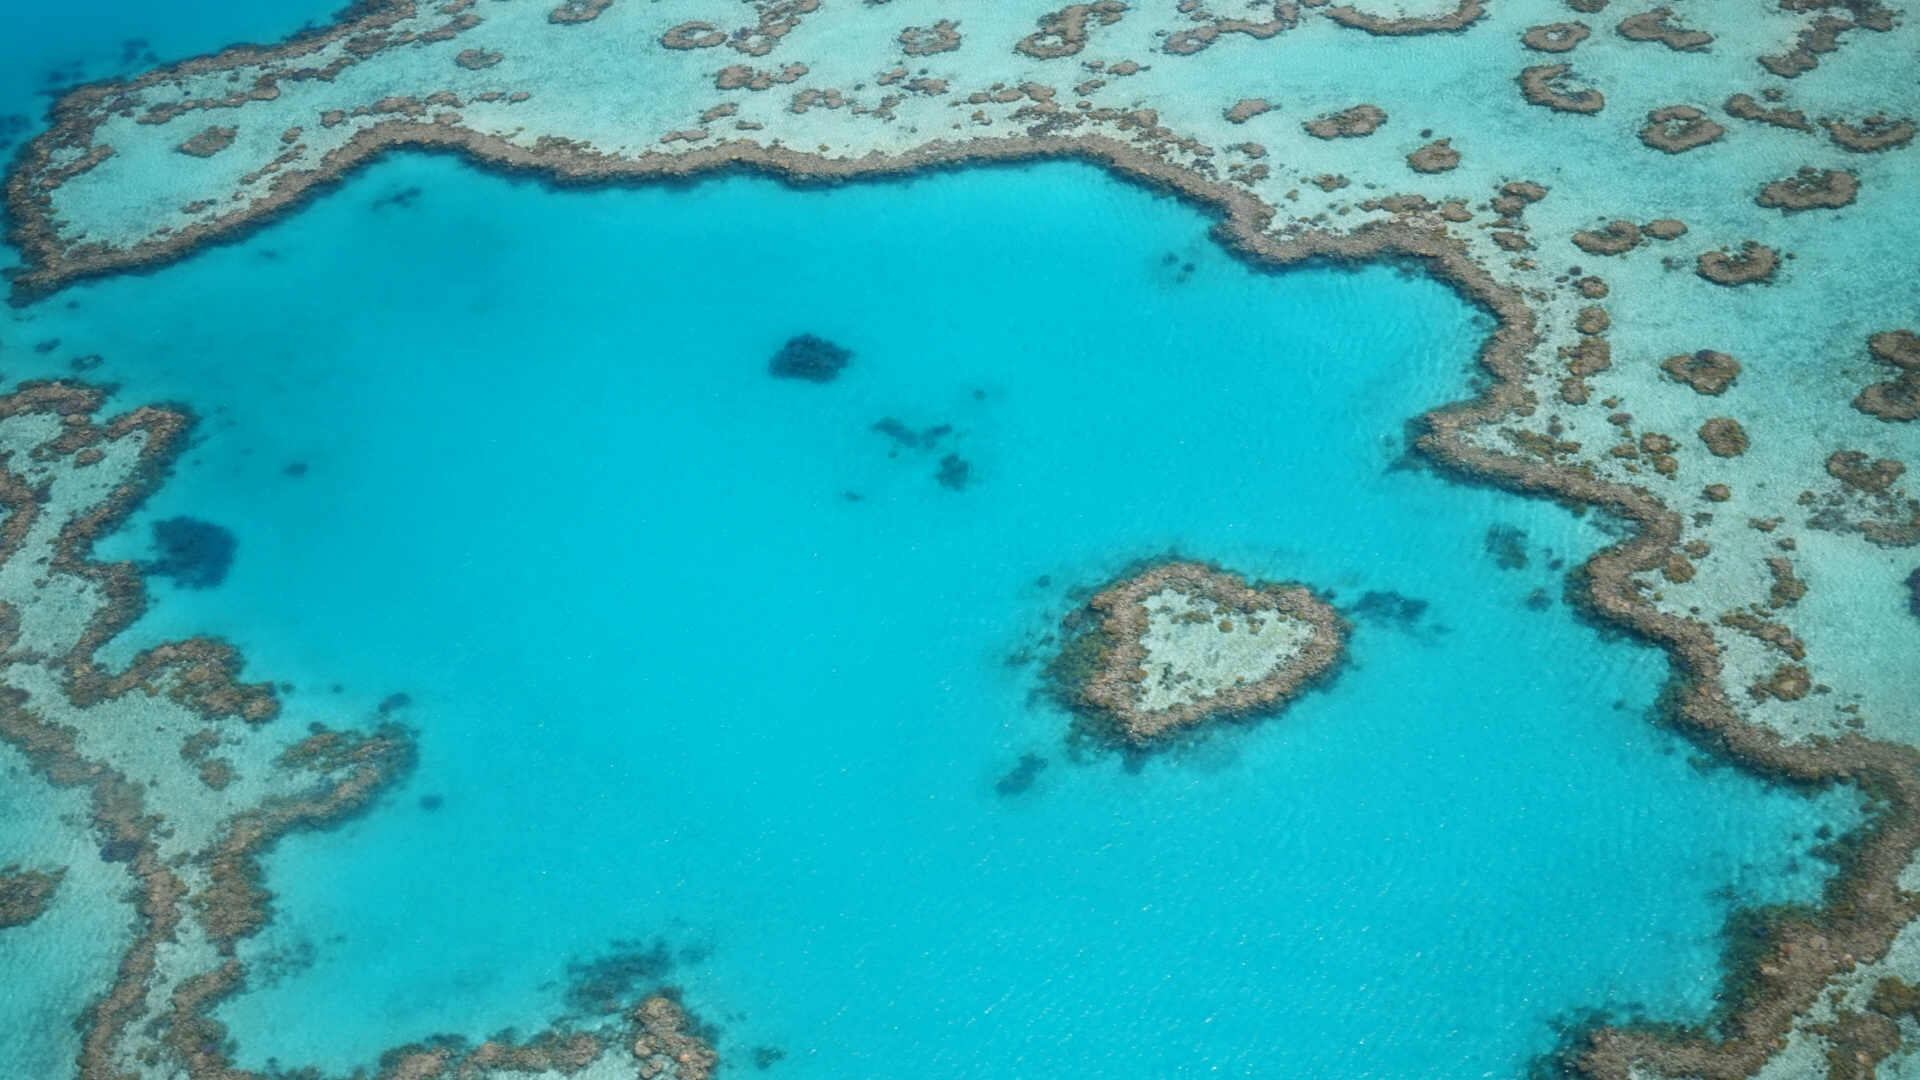 Making A Positive Impact : The Great Barrier Reef